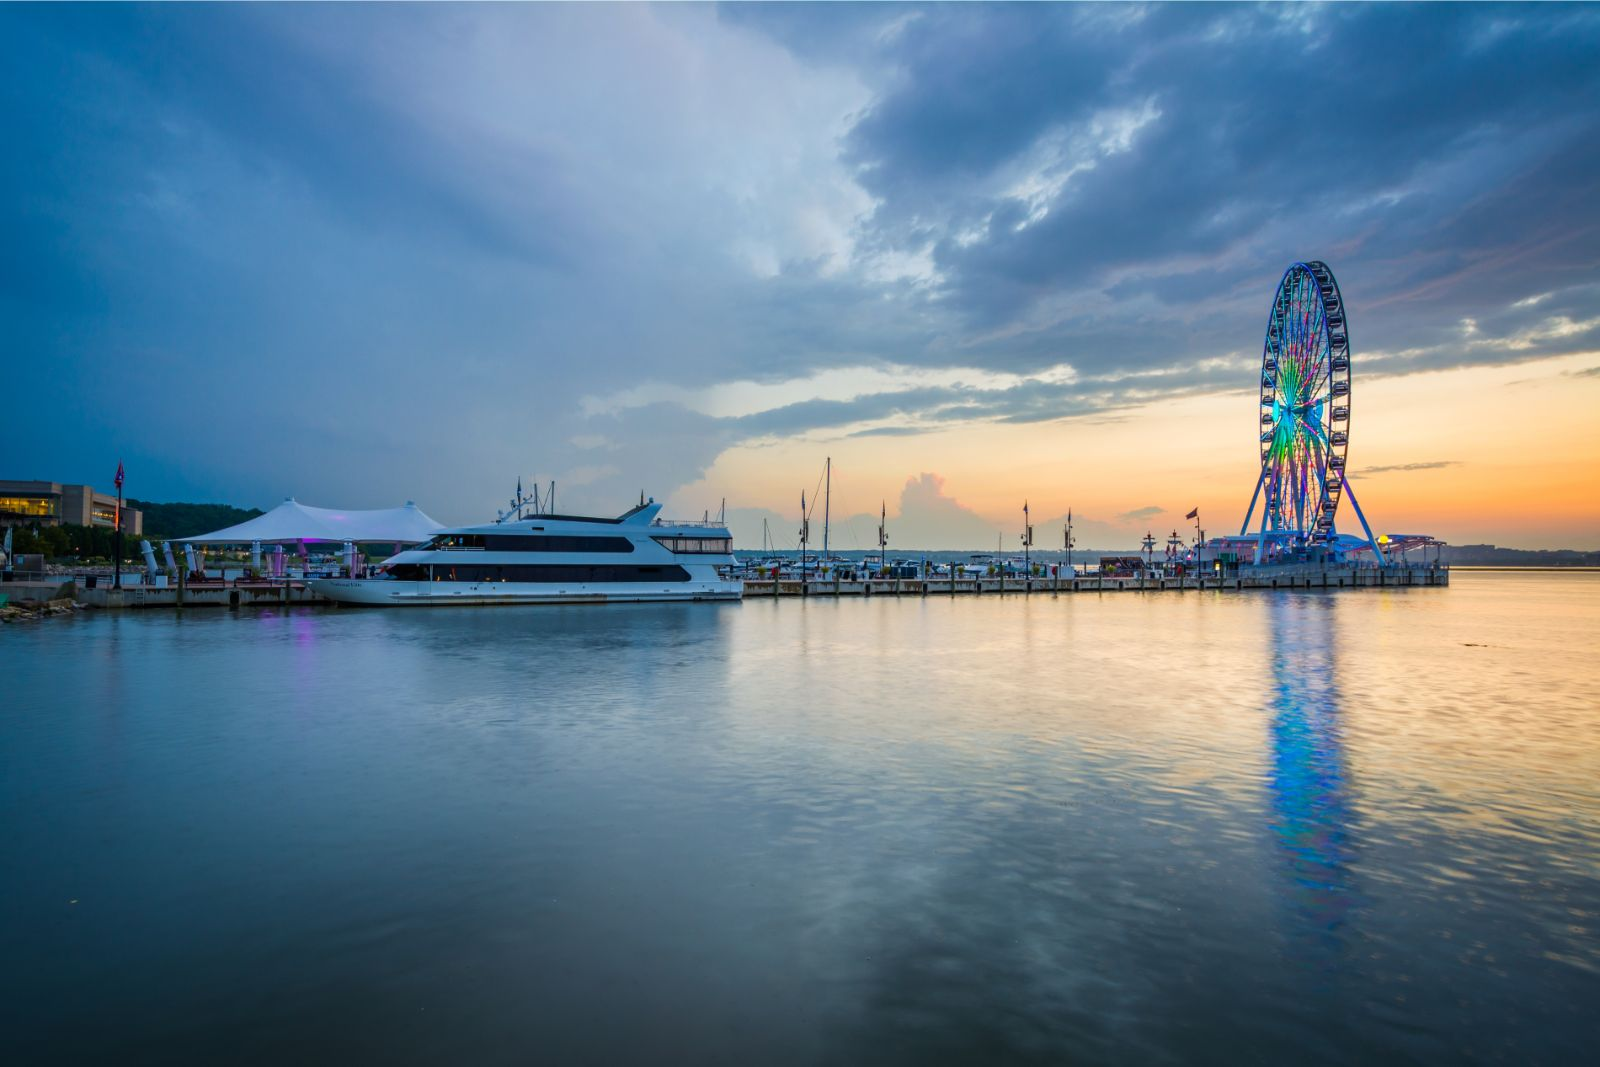 The Capital Wheel in National Harbor Maryland